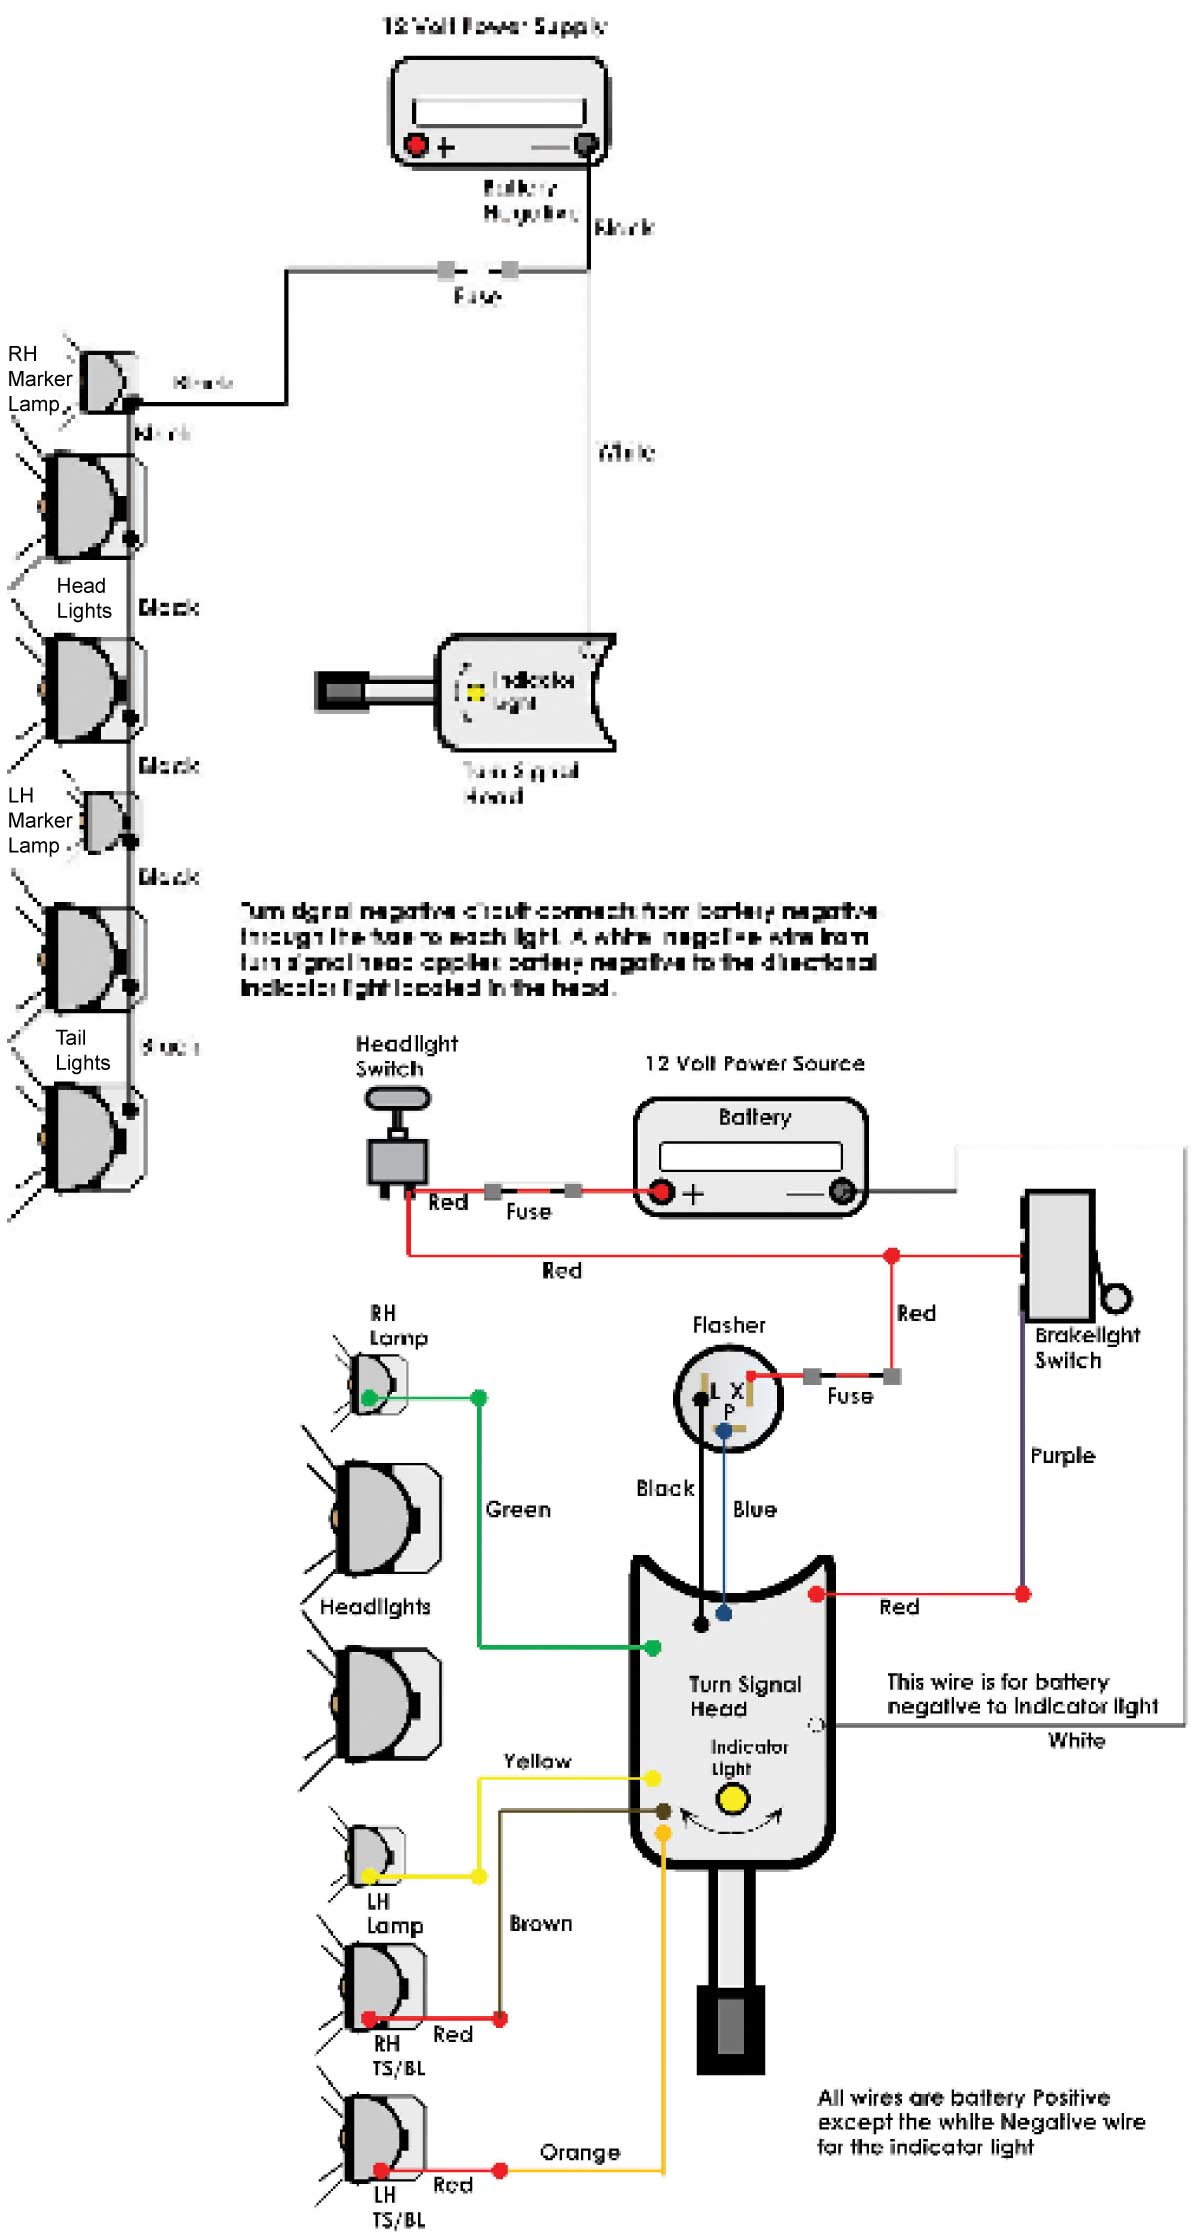 Golf Cart Wiring Diagram Neutral Safety Switch | Wiring Diagram - Brake Light Switch Wiring Diagram